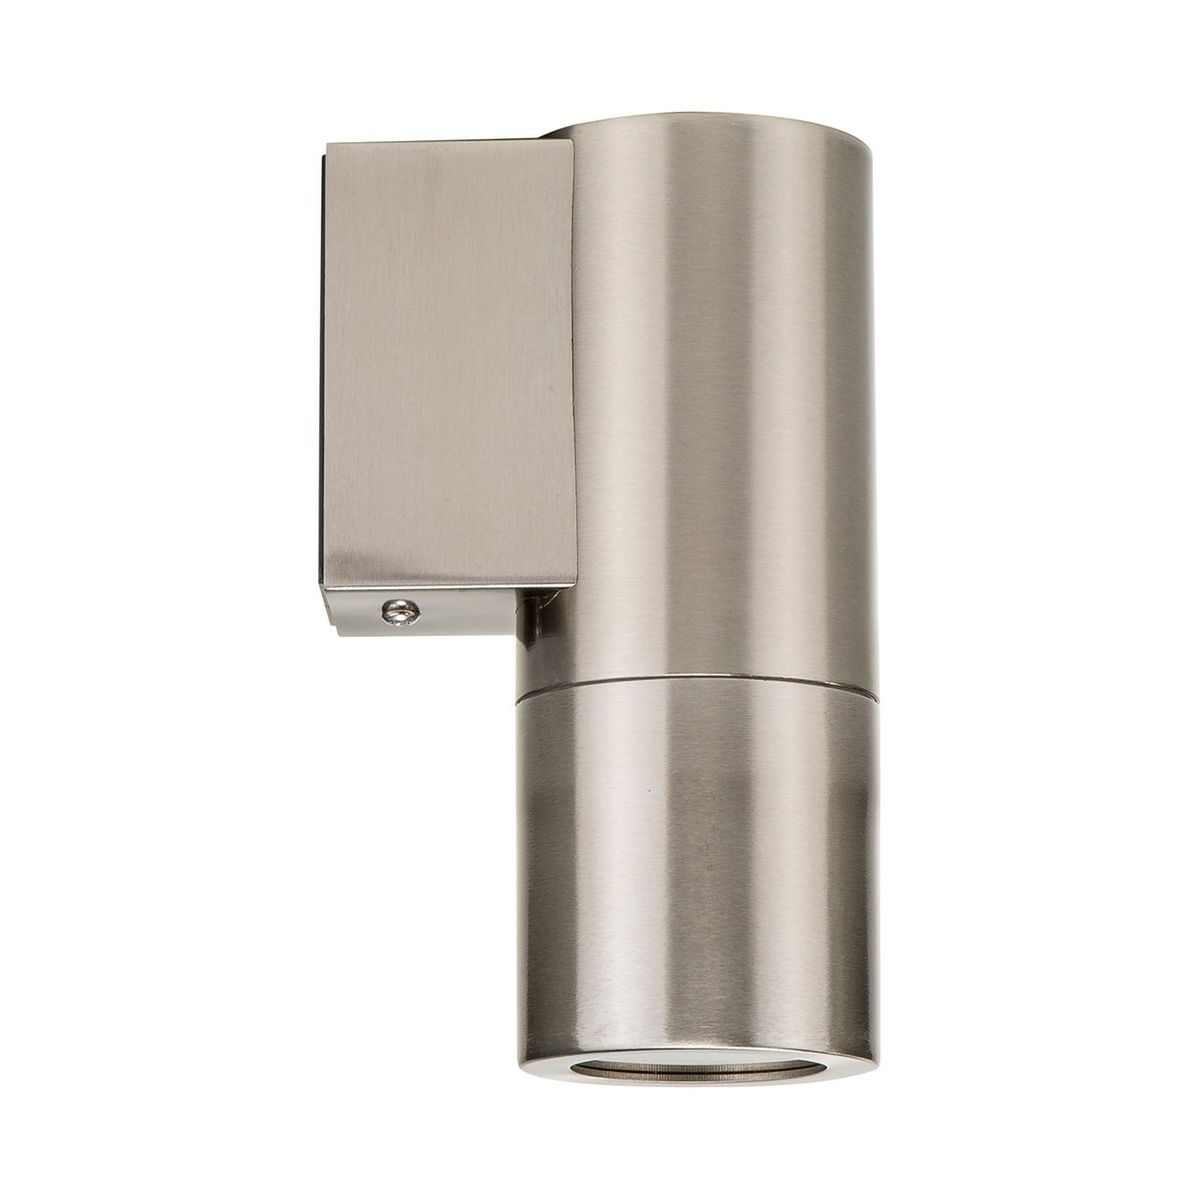 HV1171 - Piaz Stainless Steel Fixed Down LED Wall Pillar Light – Bild 1